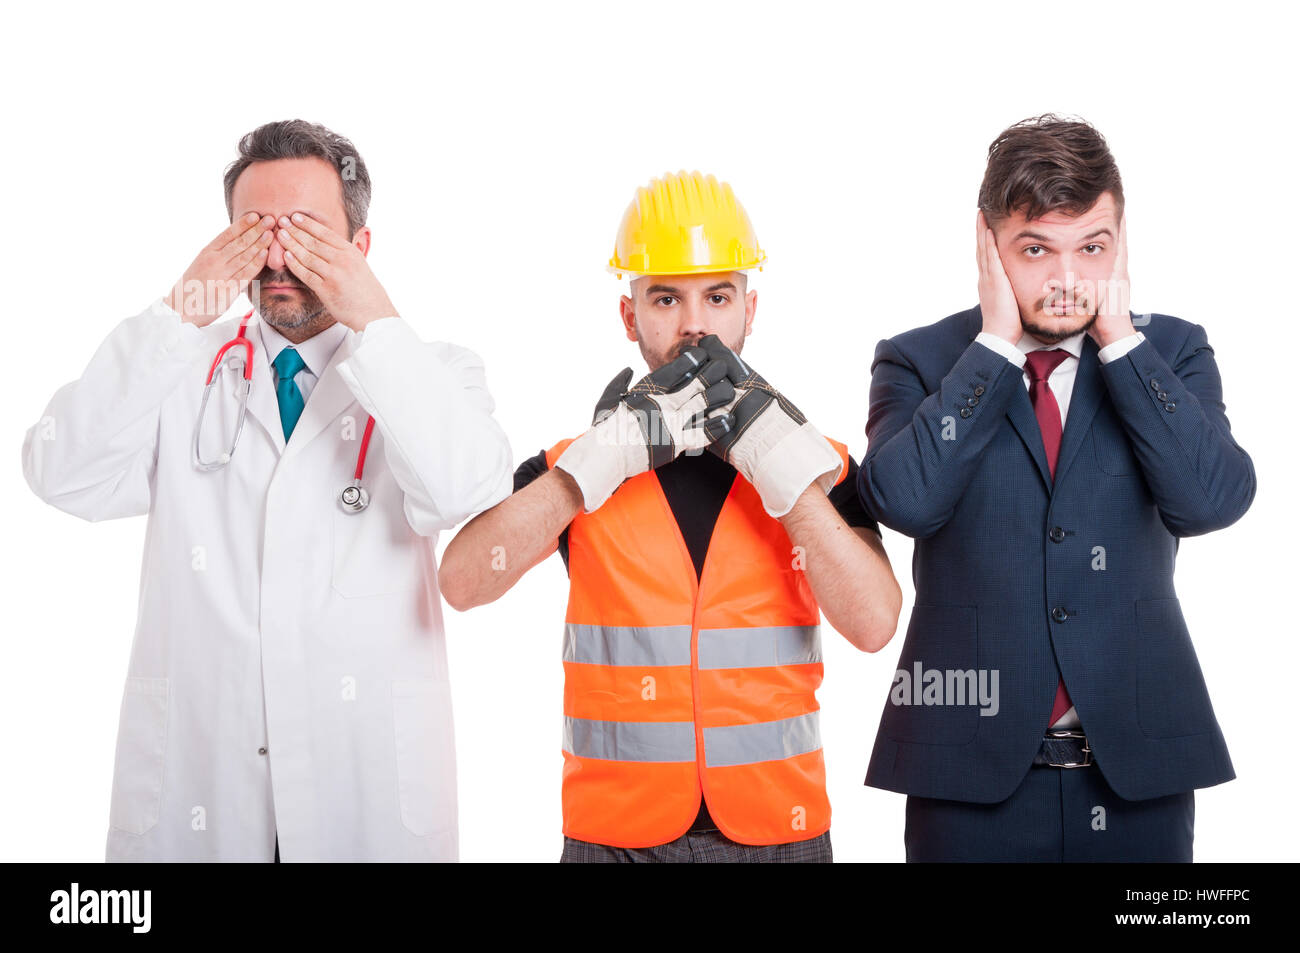 See, speak and hear no evil concept with doctor, engineer and businessman on white background Stock Photo